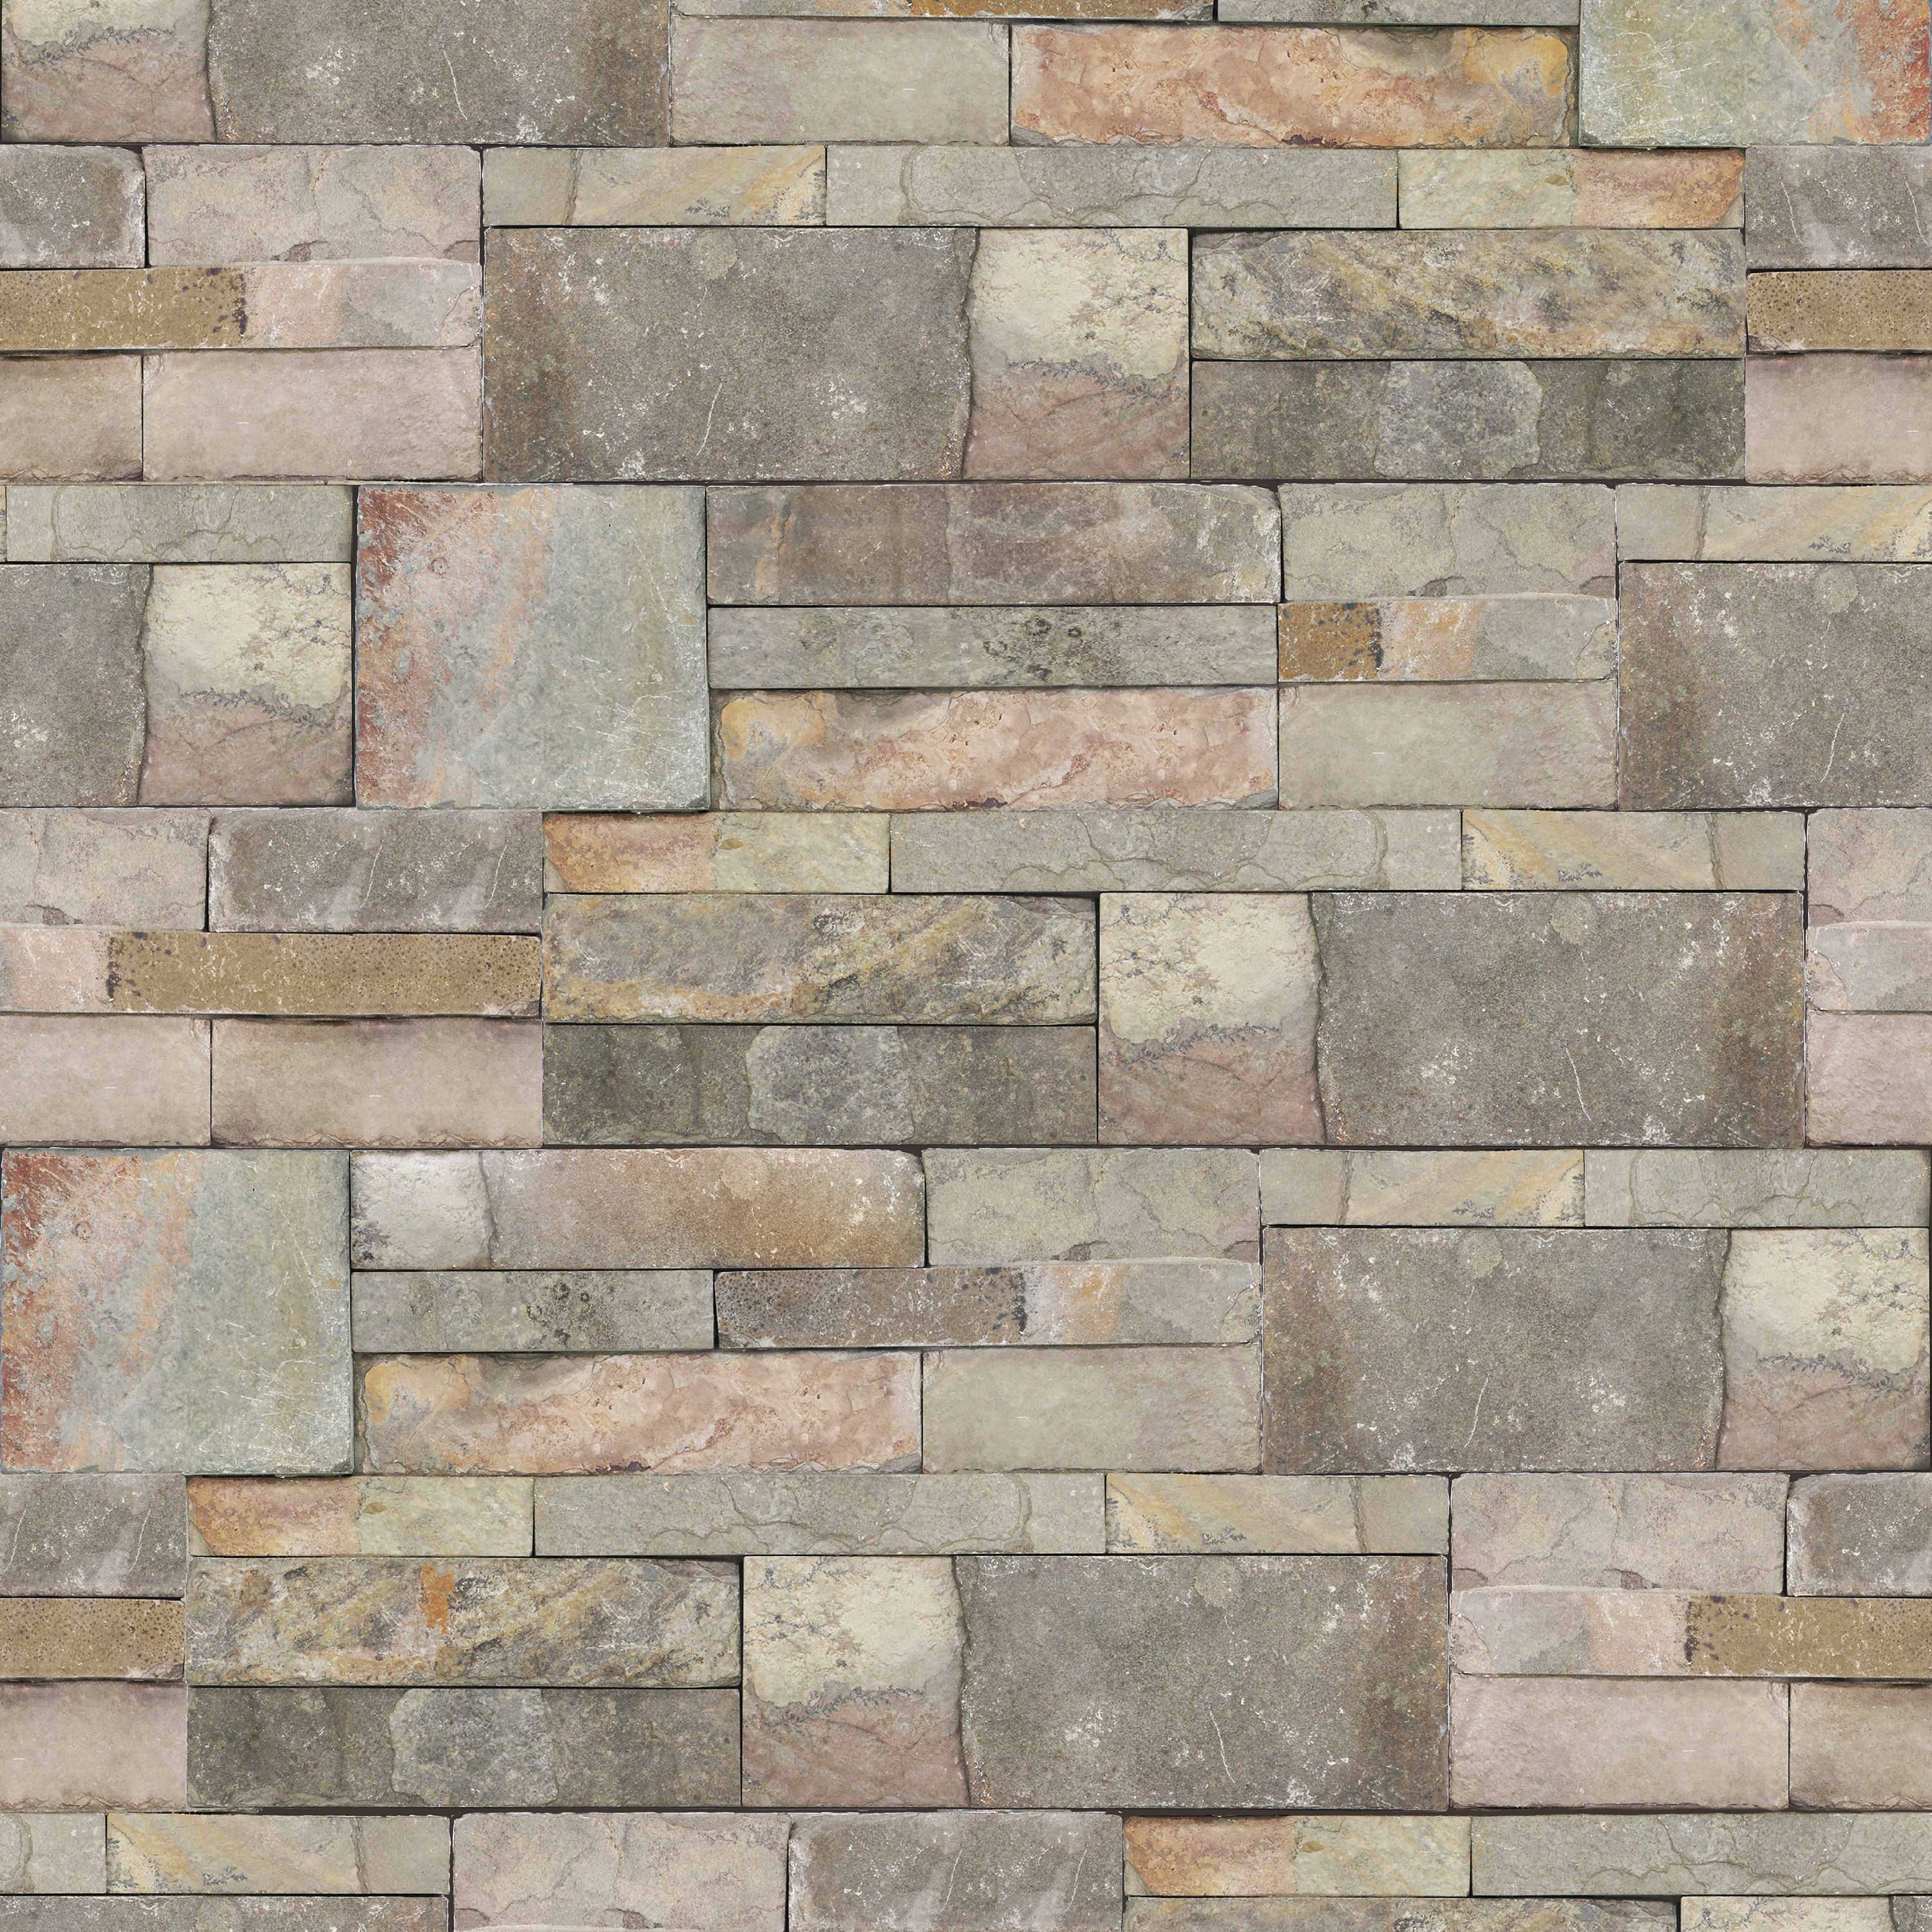 Cornish Stone Effect Wallpaper From B Q: Contour Stone Sandstone Brick Wallpaper